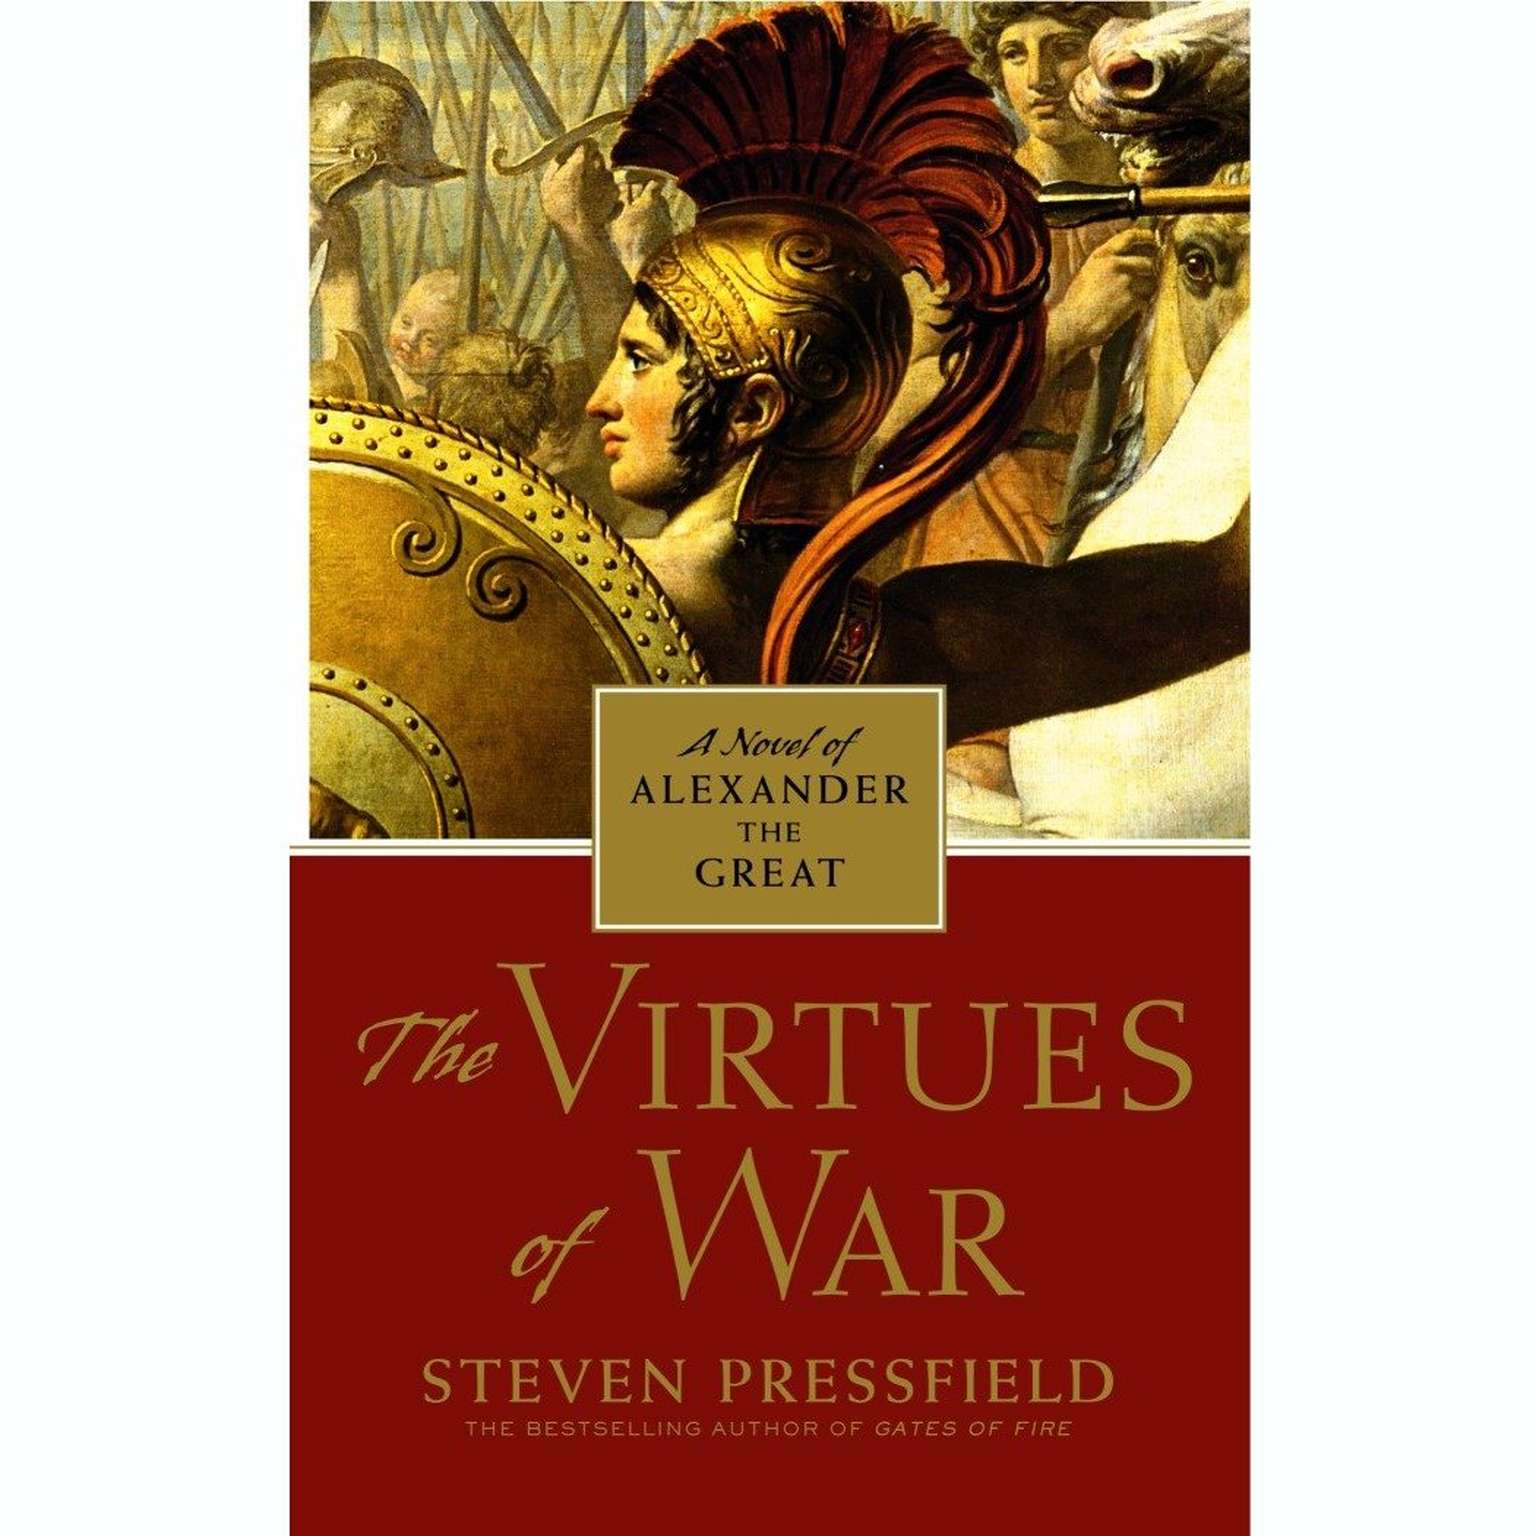 Printable The Virtues of War: A Novel of Alexander the Great Audiobook Cover Art